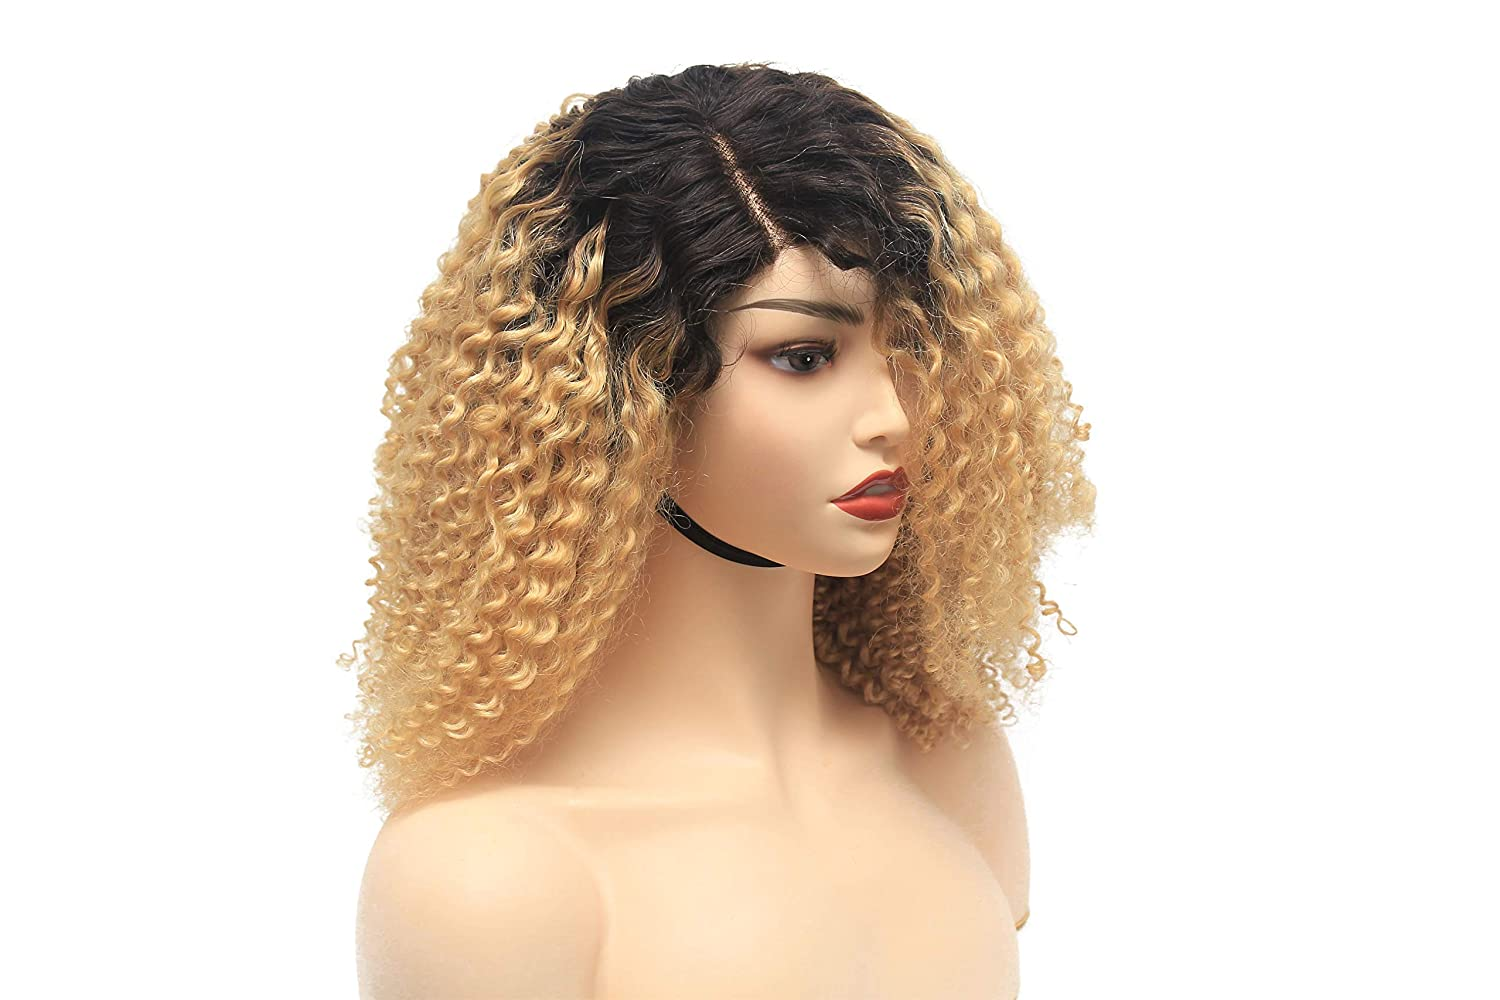 Curly Human Hair Wig - Direct store Ombre Wavy Glueless Blonde Lace Front Free shipping on posting reviews